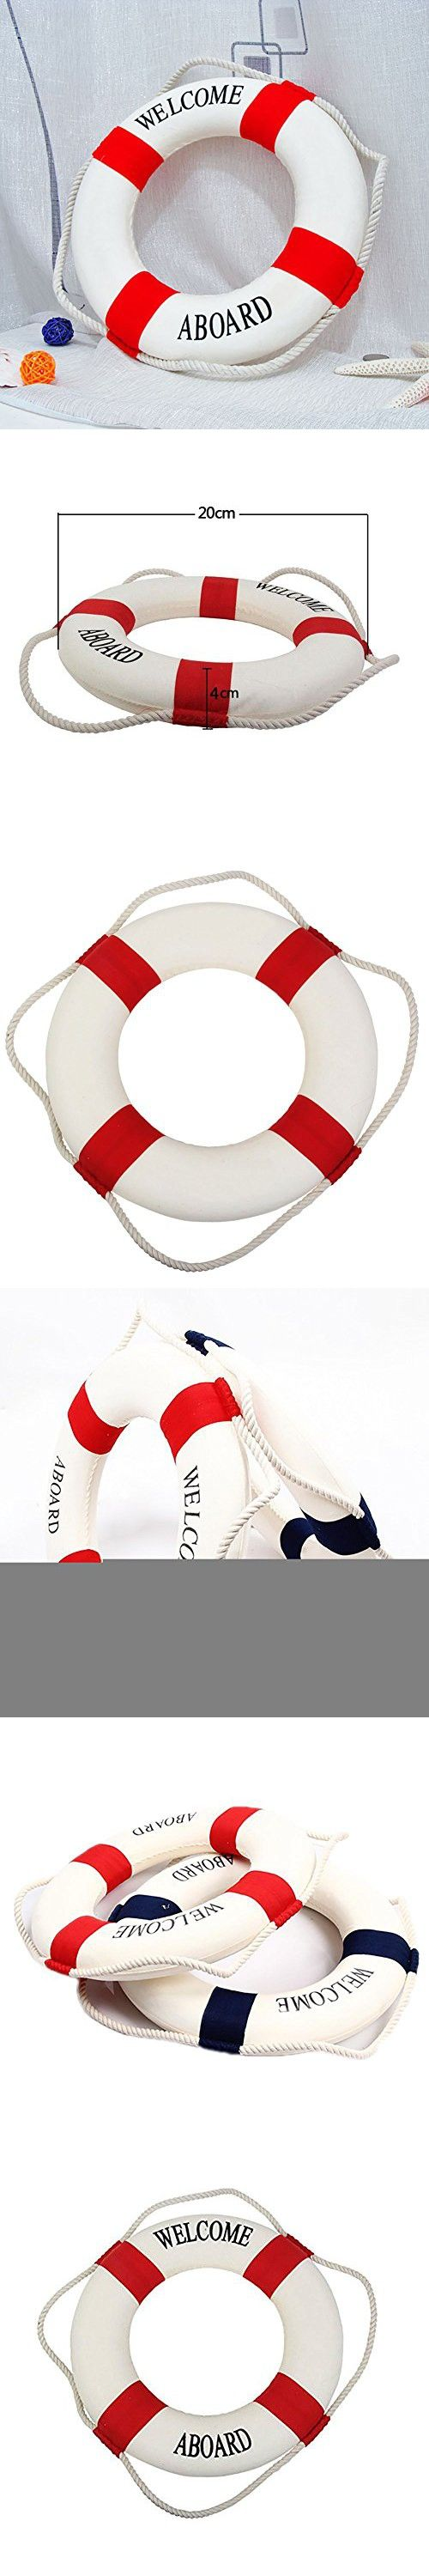 Peyan 4 Sizes Navy Style Lifebuoy Nautical Aboard Sign In Home Decor Decorative Life Ring Room Bar Home Decoration